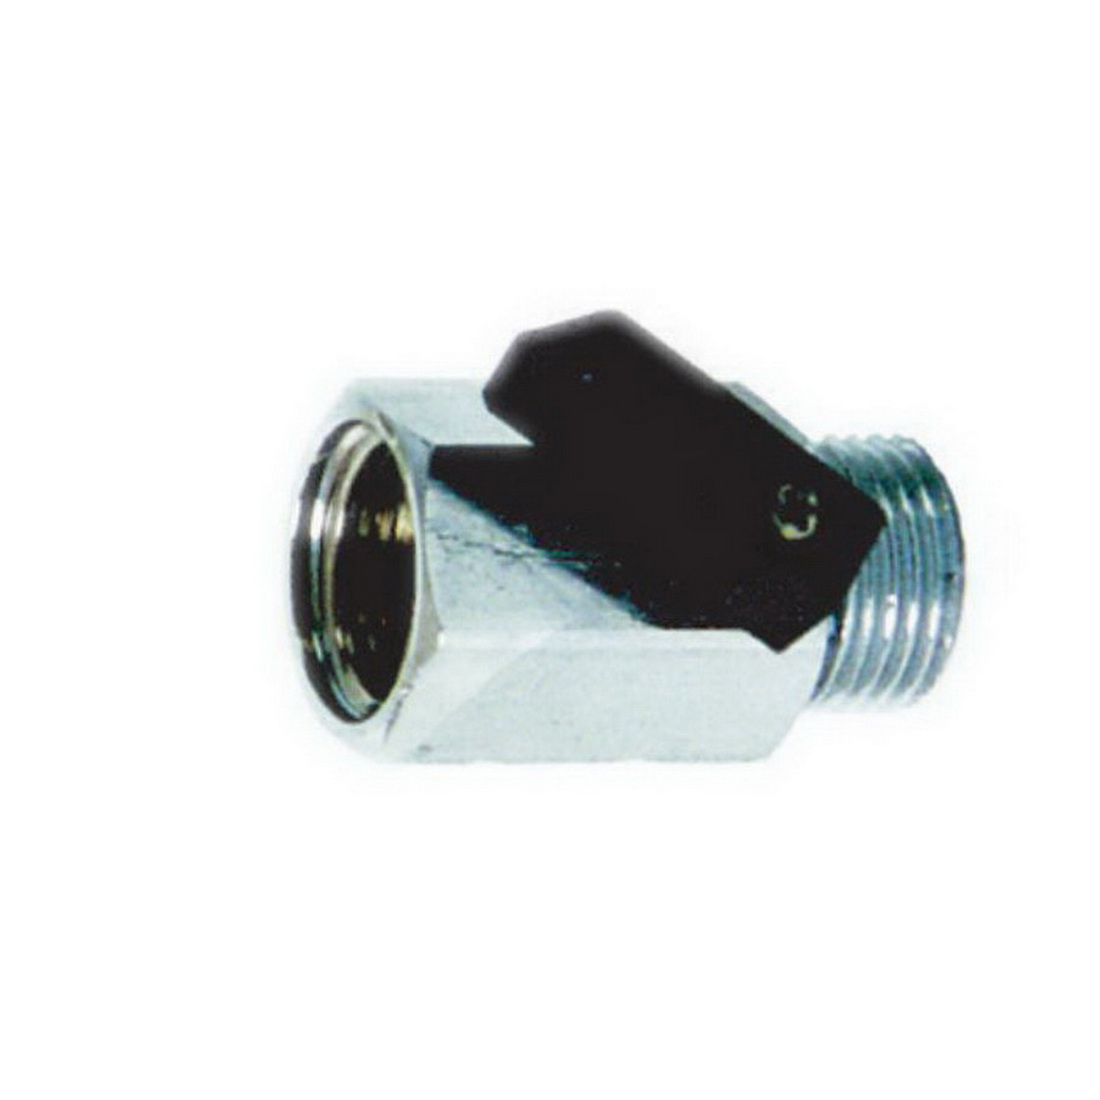 Straight Mini Ball Valve with Handle 15mm M x F 100 kPa Forged Brass Nickel Plated/Chrome Plated